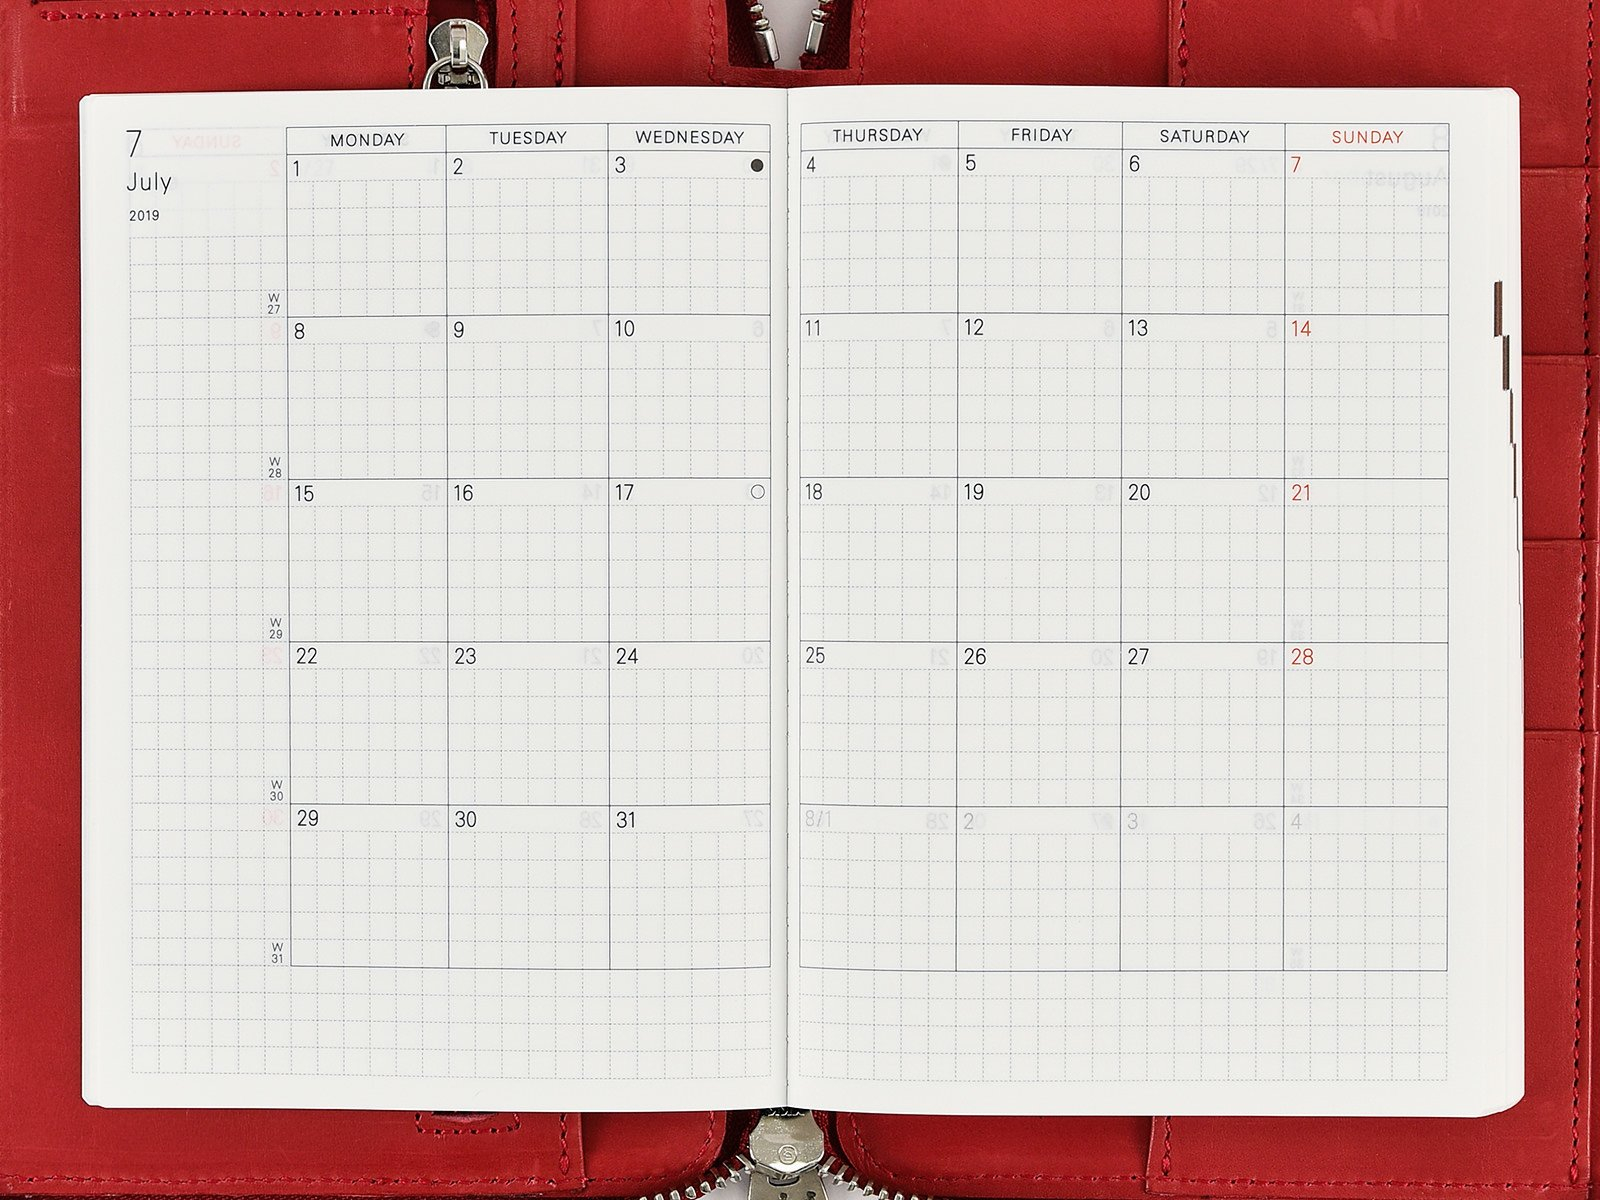 Monthly Calendar - Hobonichi Techo Planner - Book Buying Guide Calendar 2019 Book